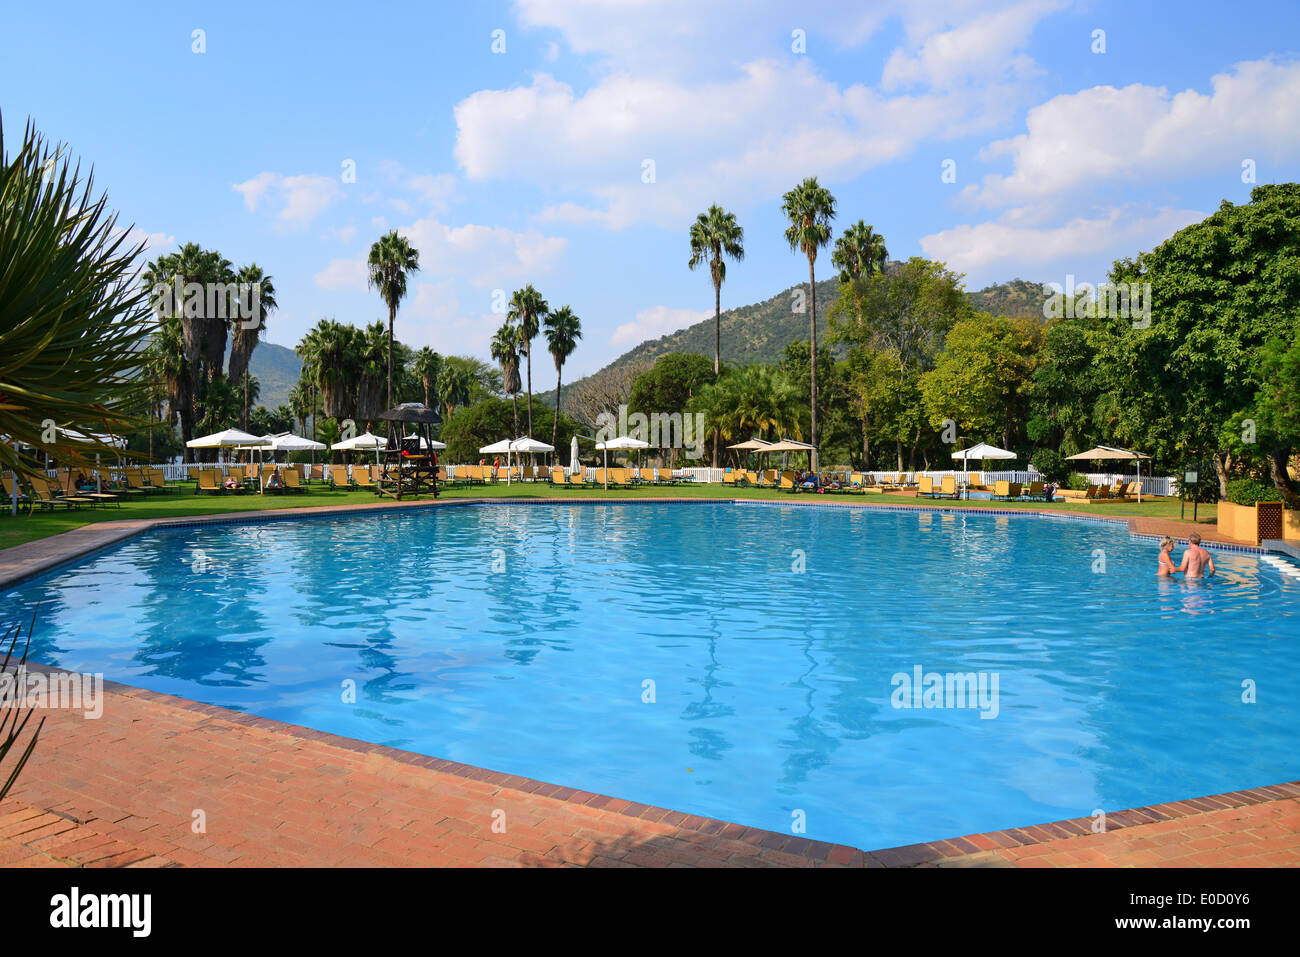 Swimming Pool At The Cabanas Hotel, Sun City Holiday Resort, Pilanesberg,  North West Province, Republic Of South Africa